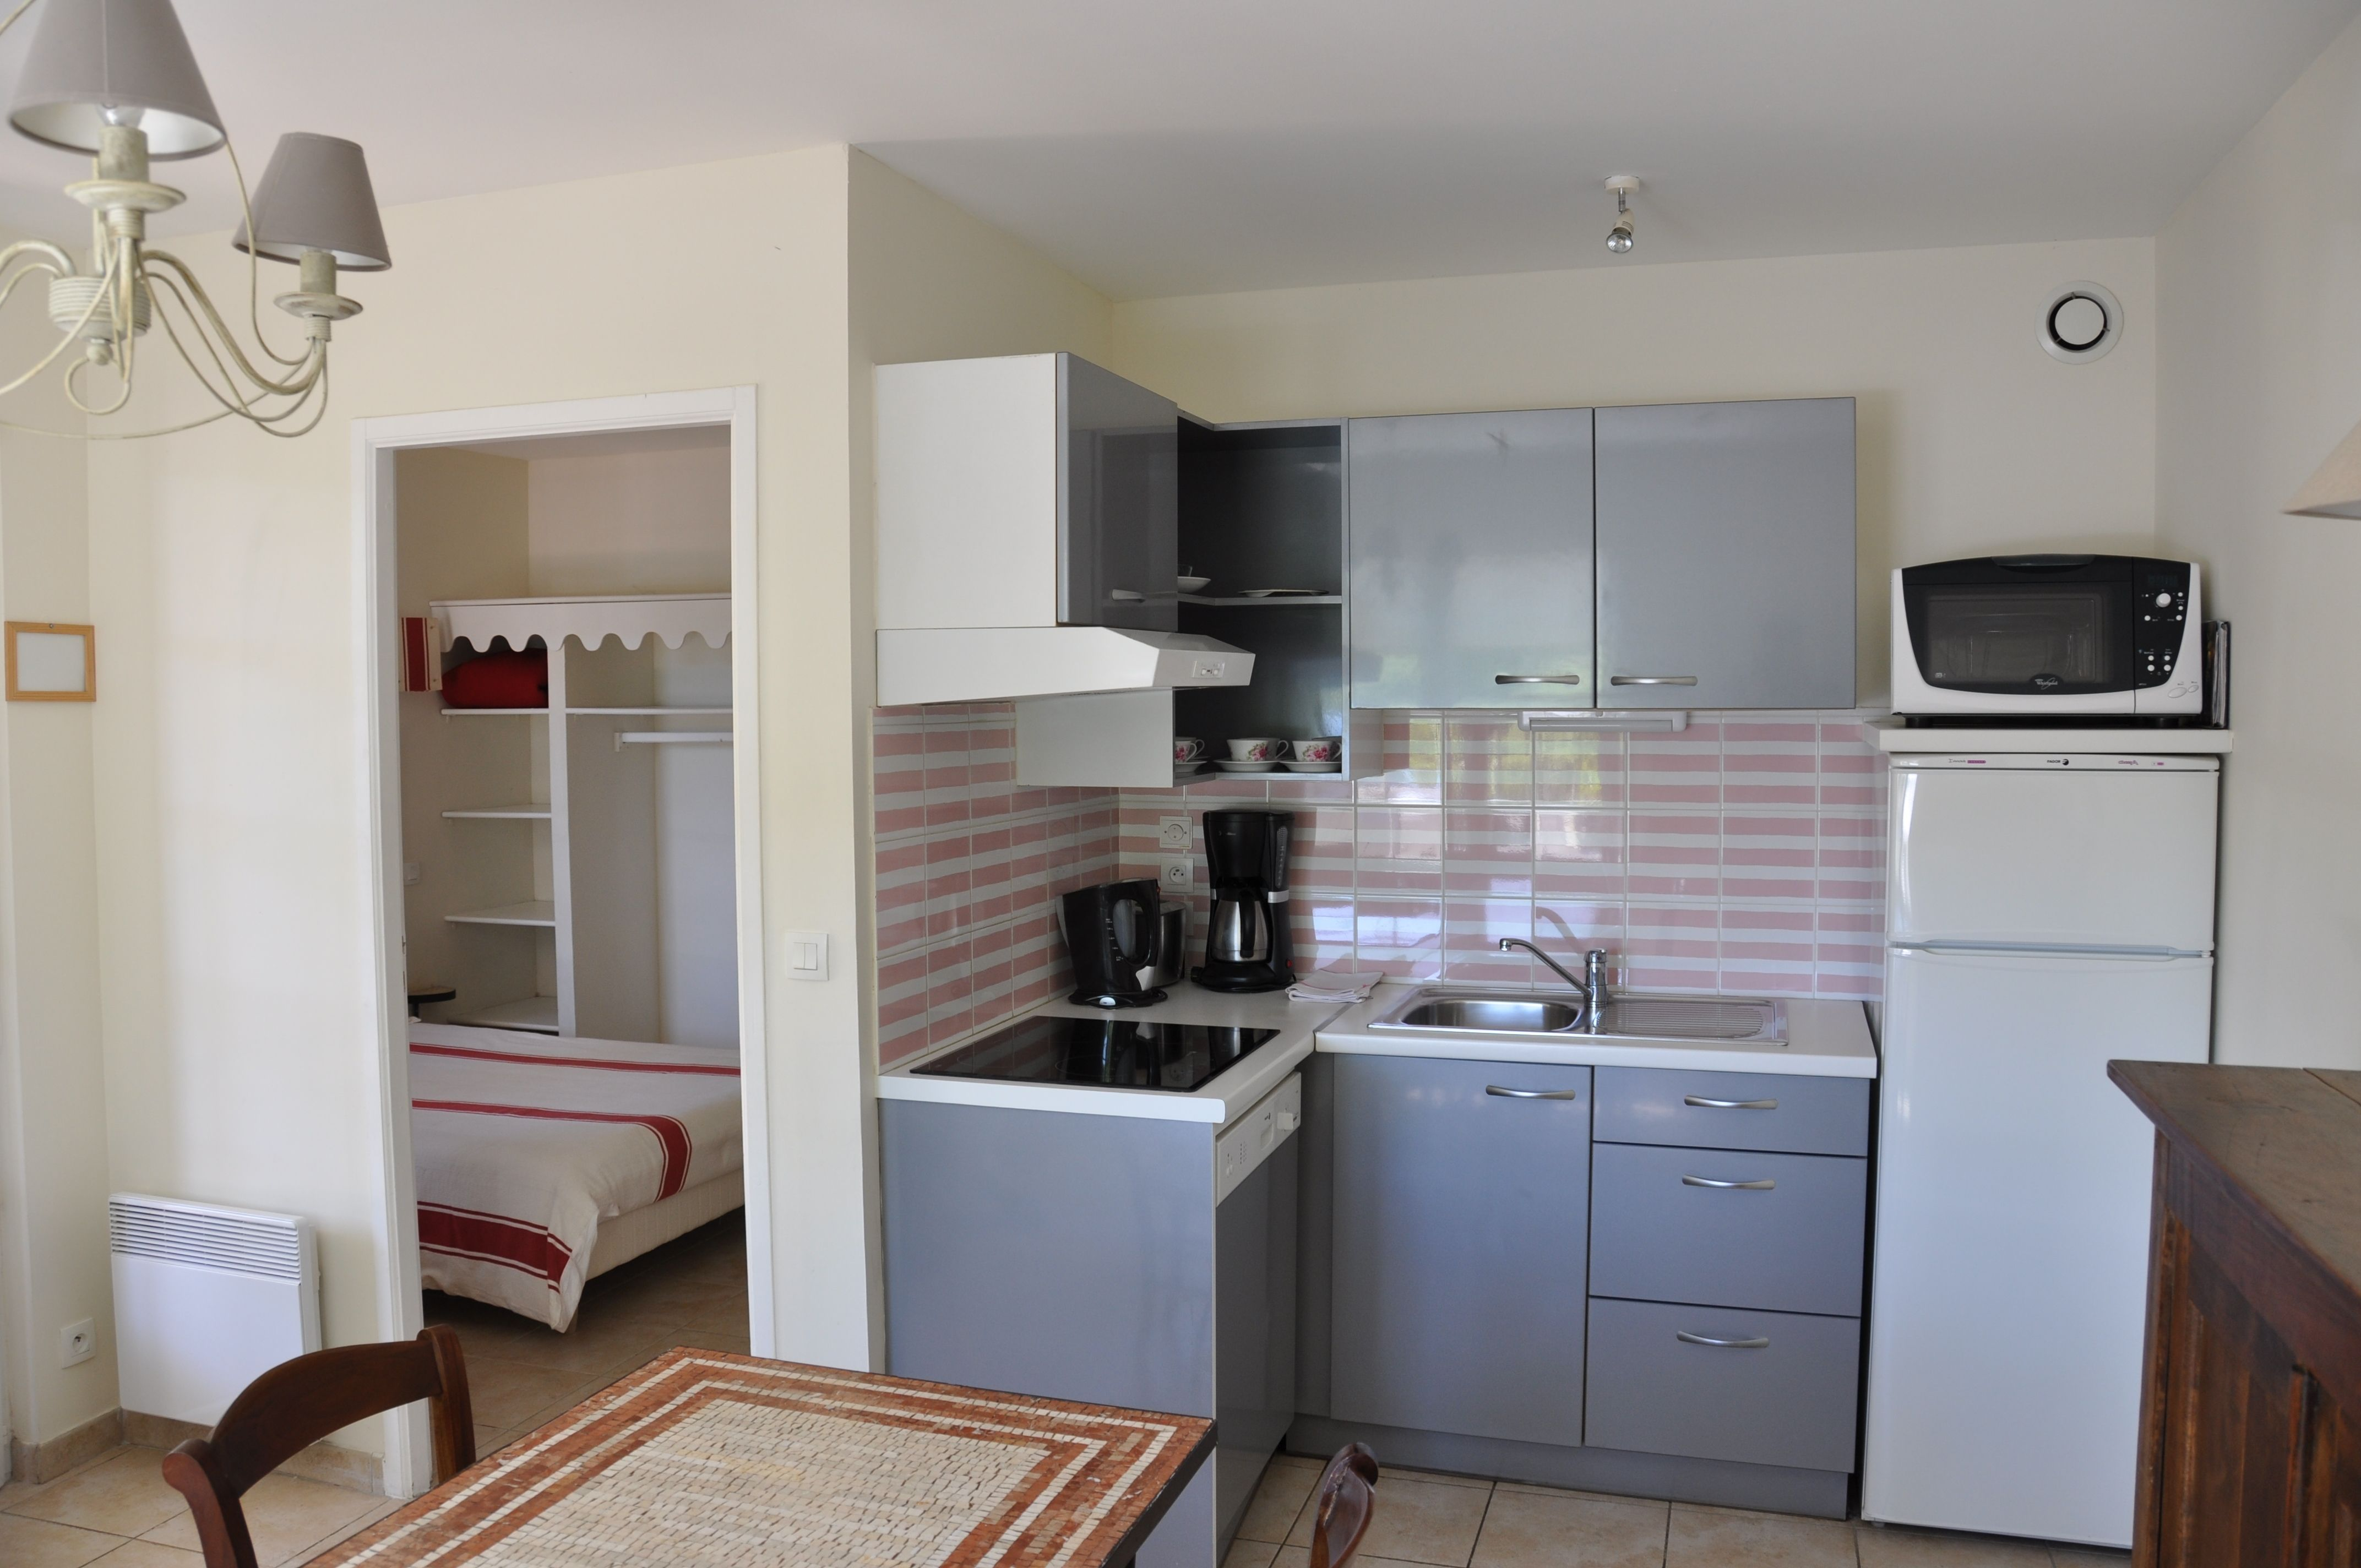 A 1 bedroom apartment fully equipped kitchen un for Cuisine meublee et equipee